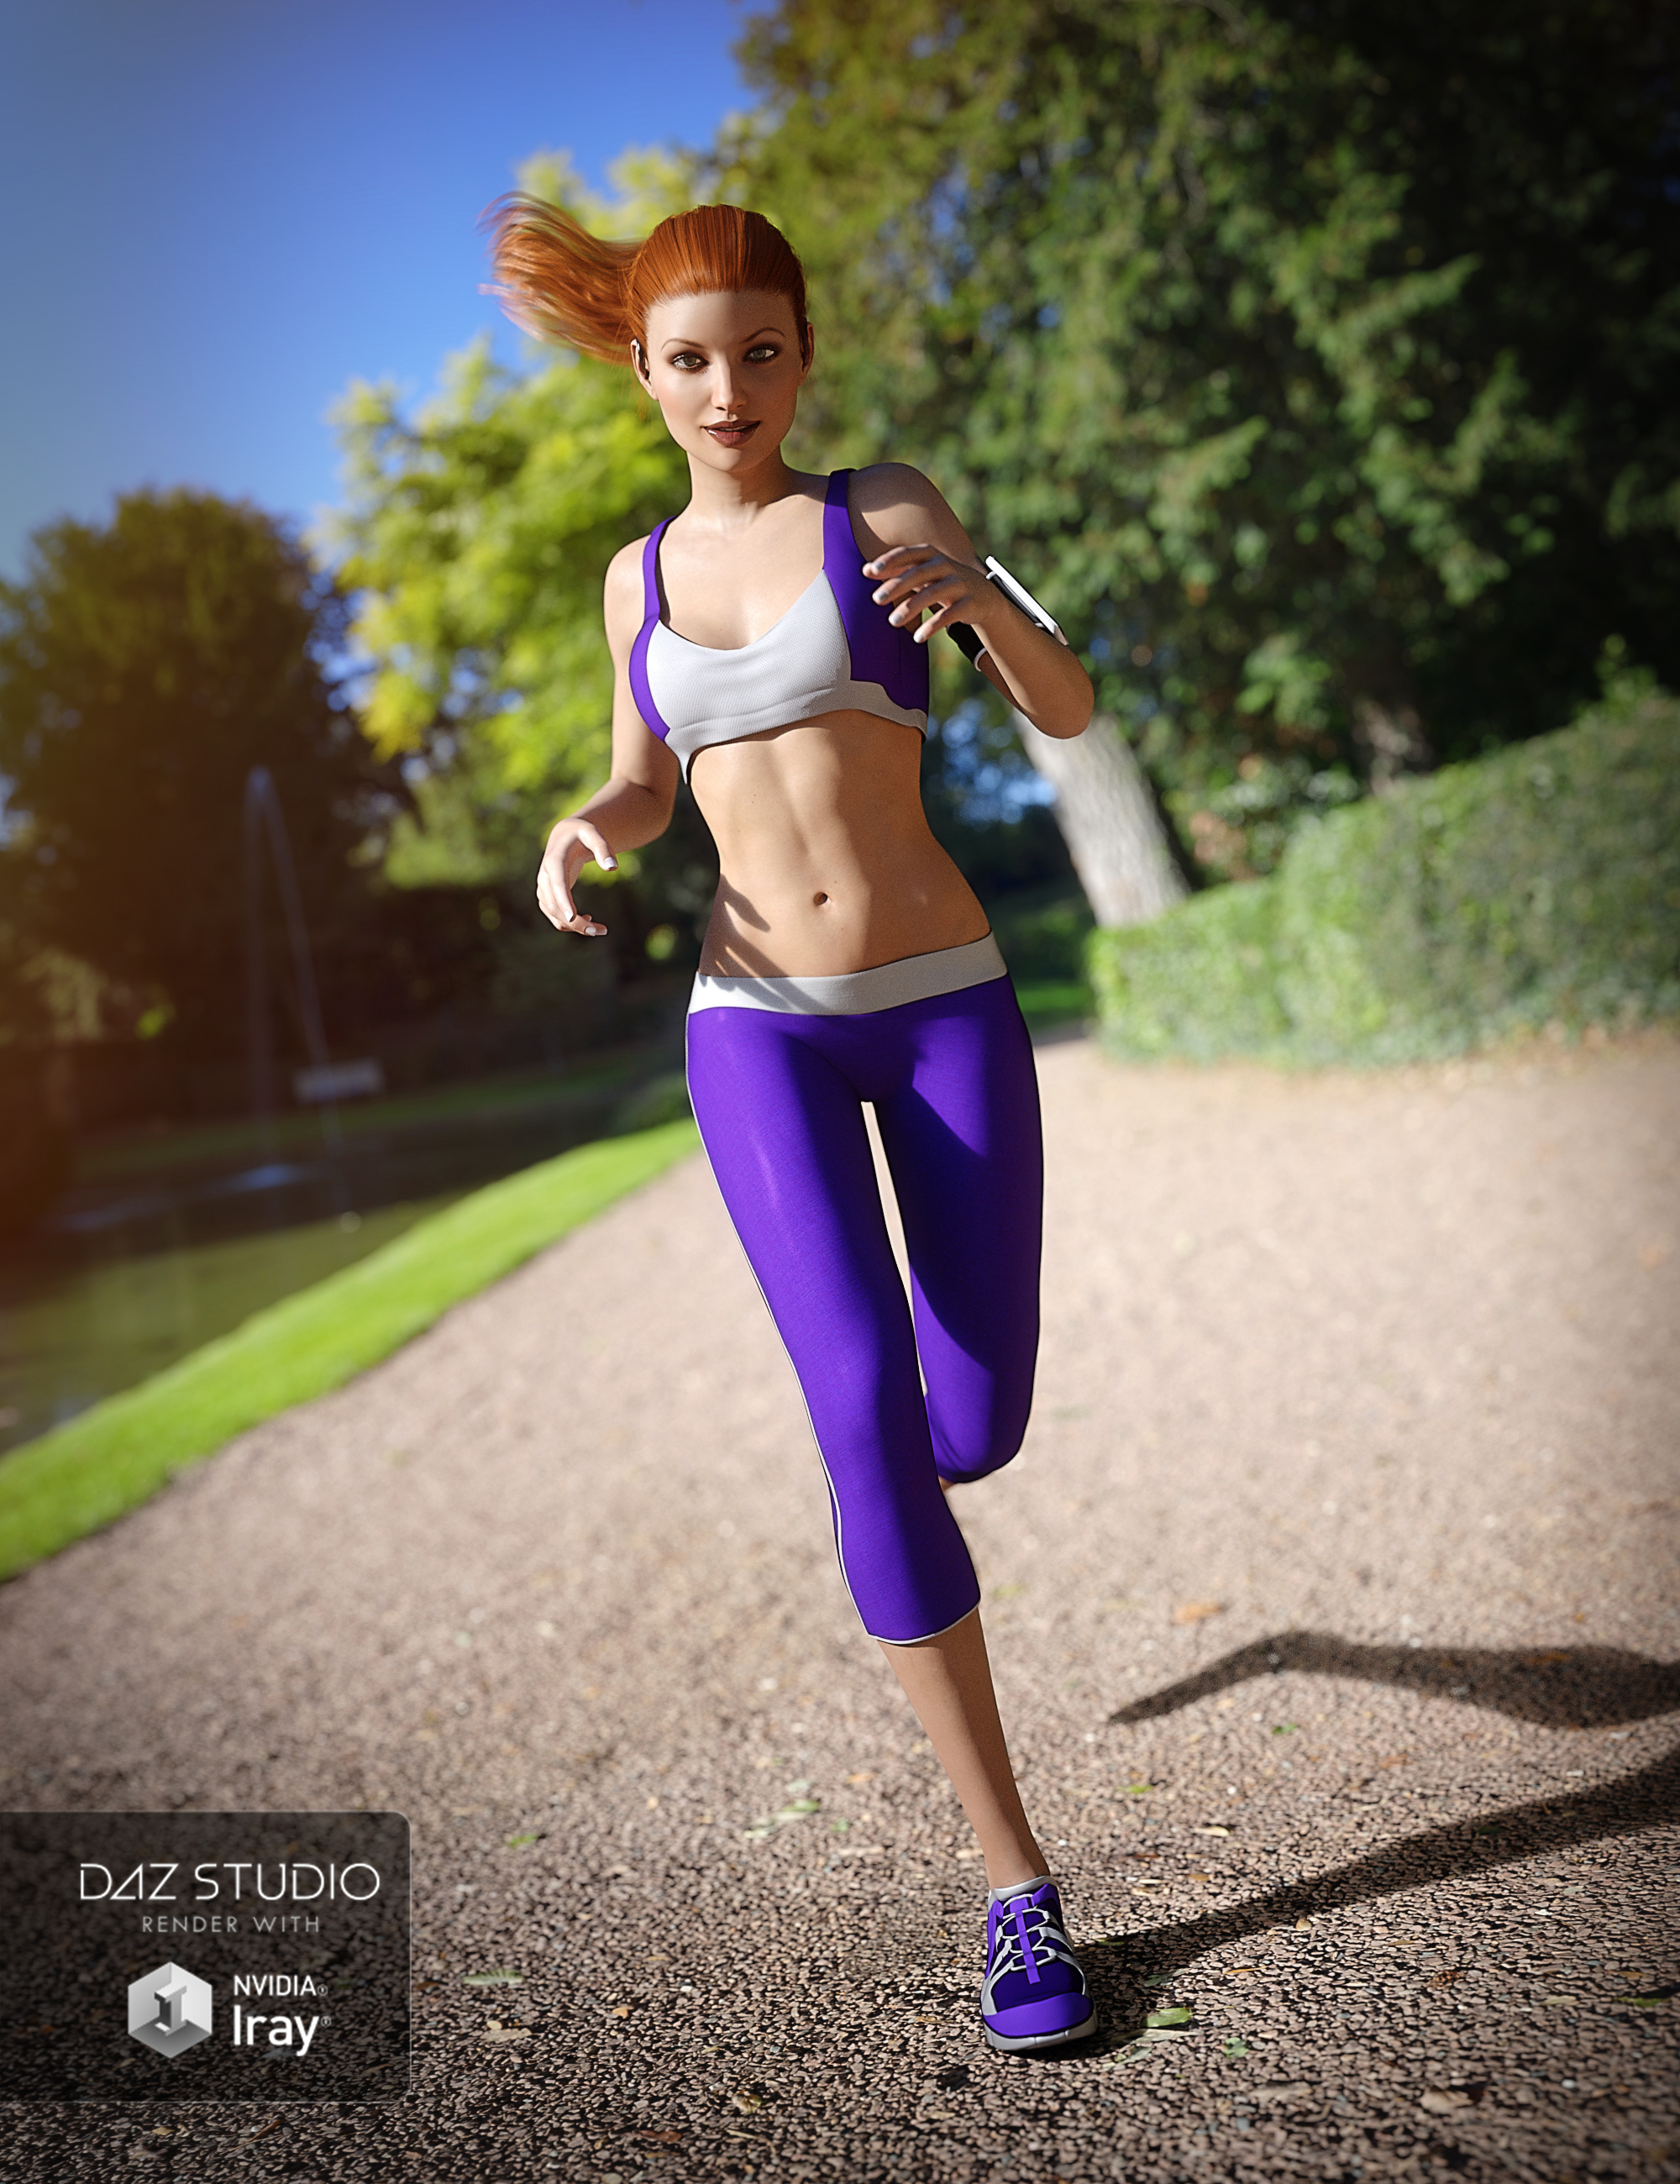 UltraHD IRAY HDRI With DOF - Parks and Creation by: Cake OneBob Callawah, 3D Models by Daz 3D